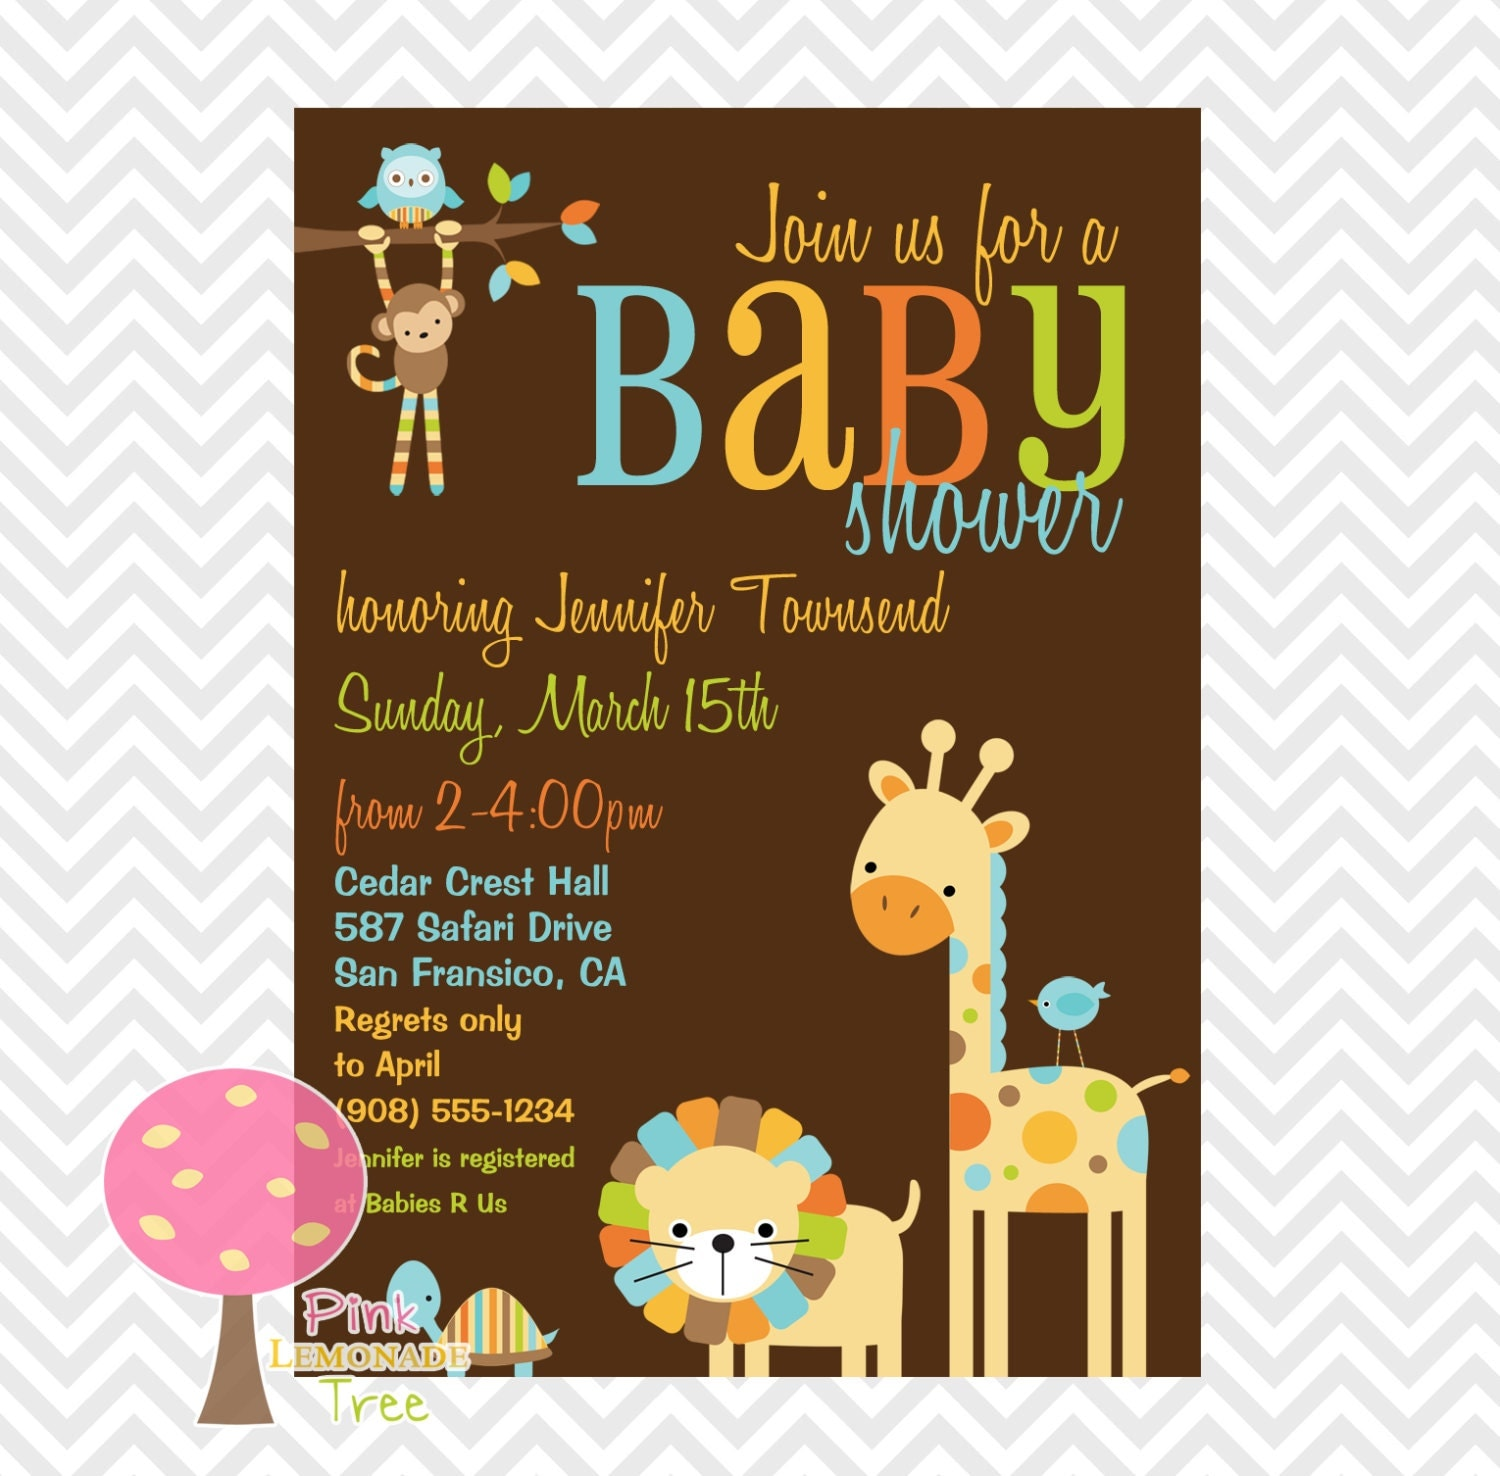 Walgreen Invitations for nice invitations sample